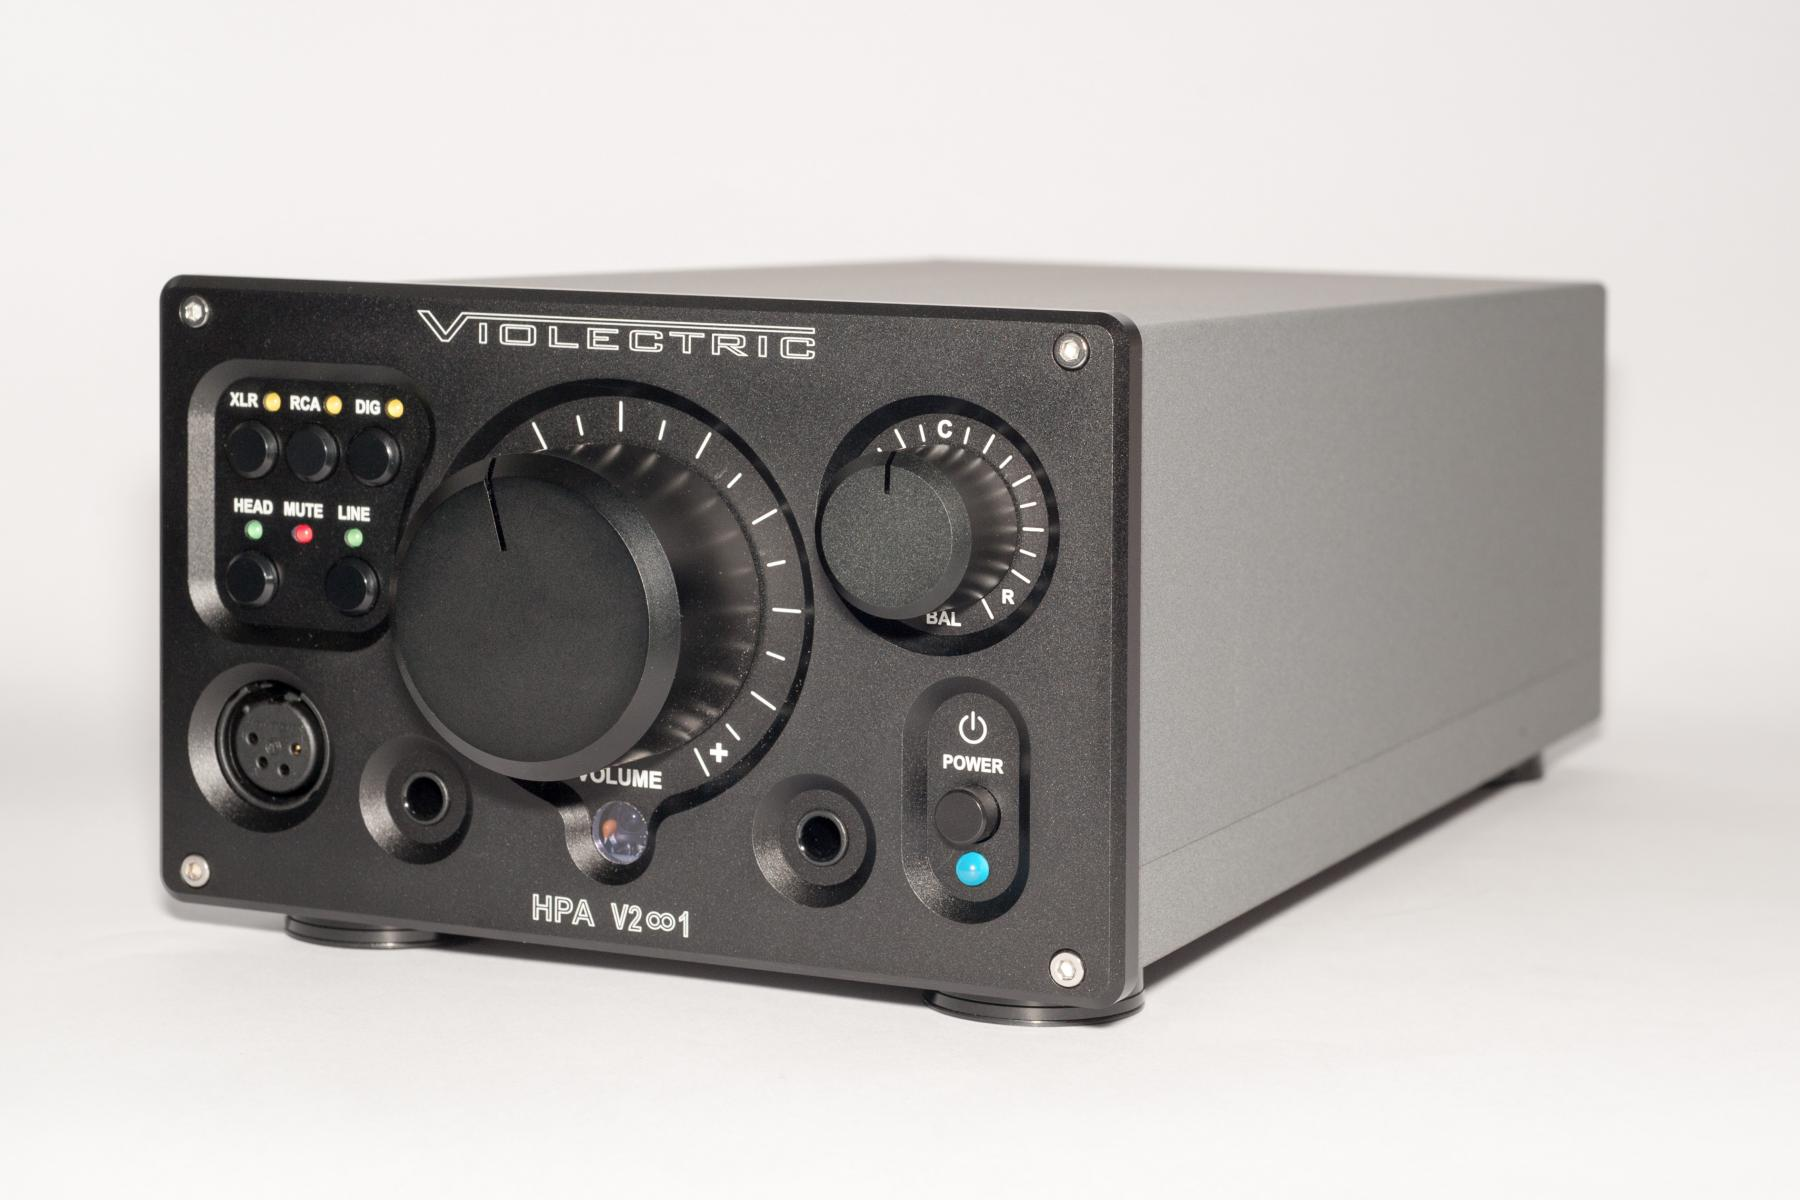 Violectric HPA V281 headphones amp and preamp